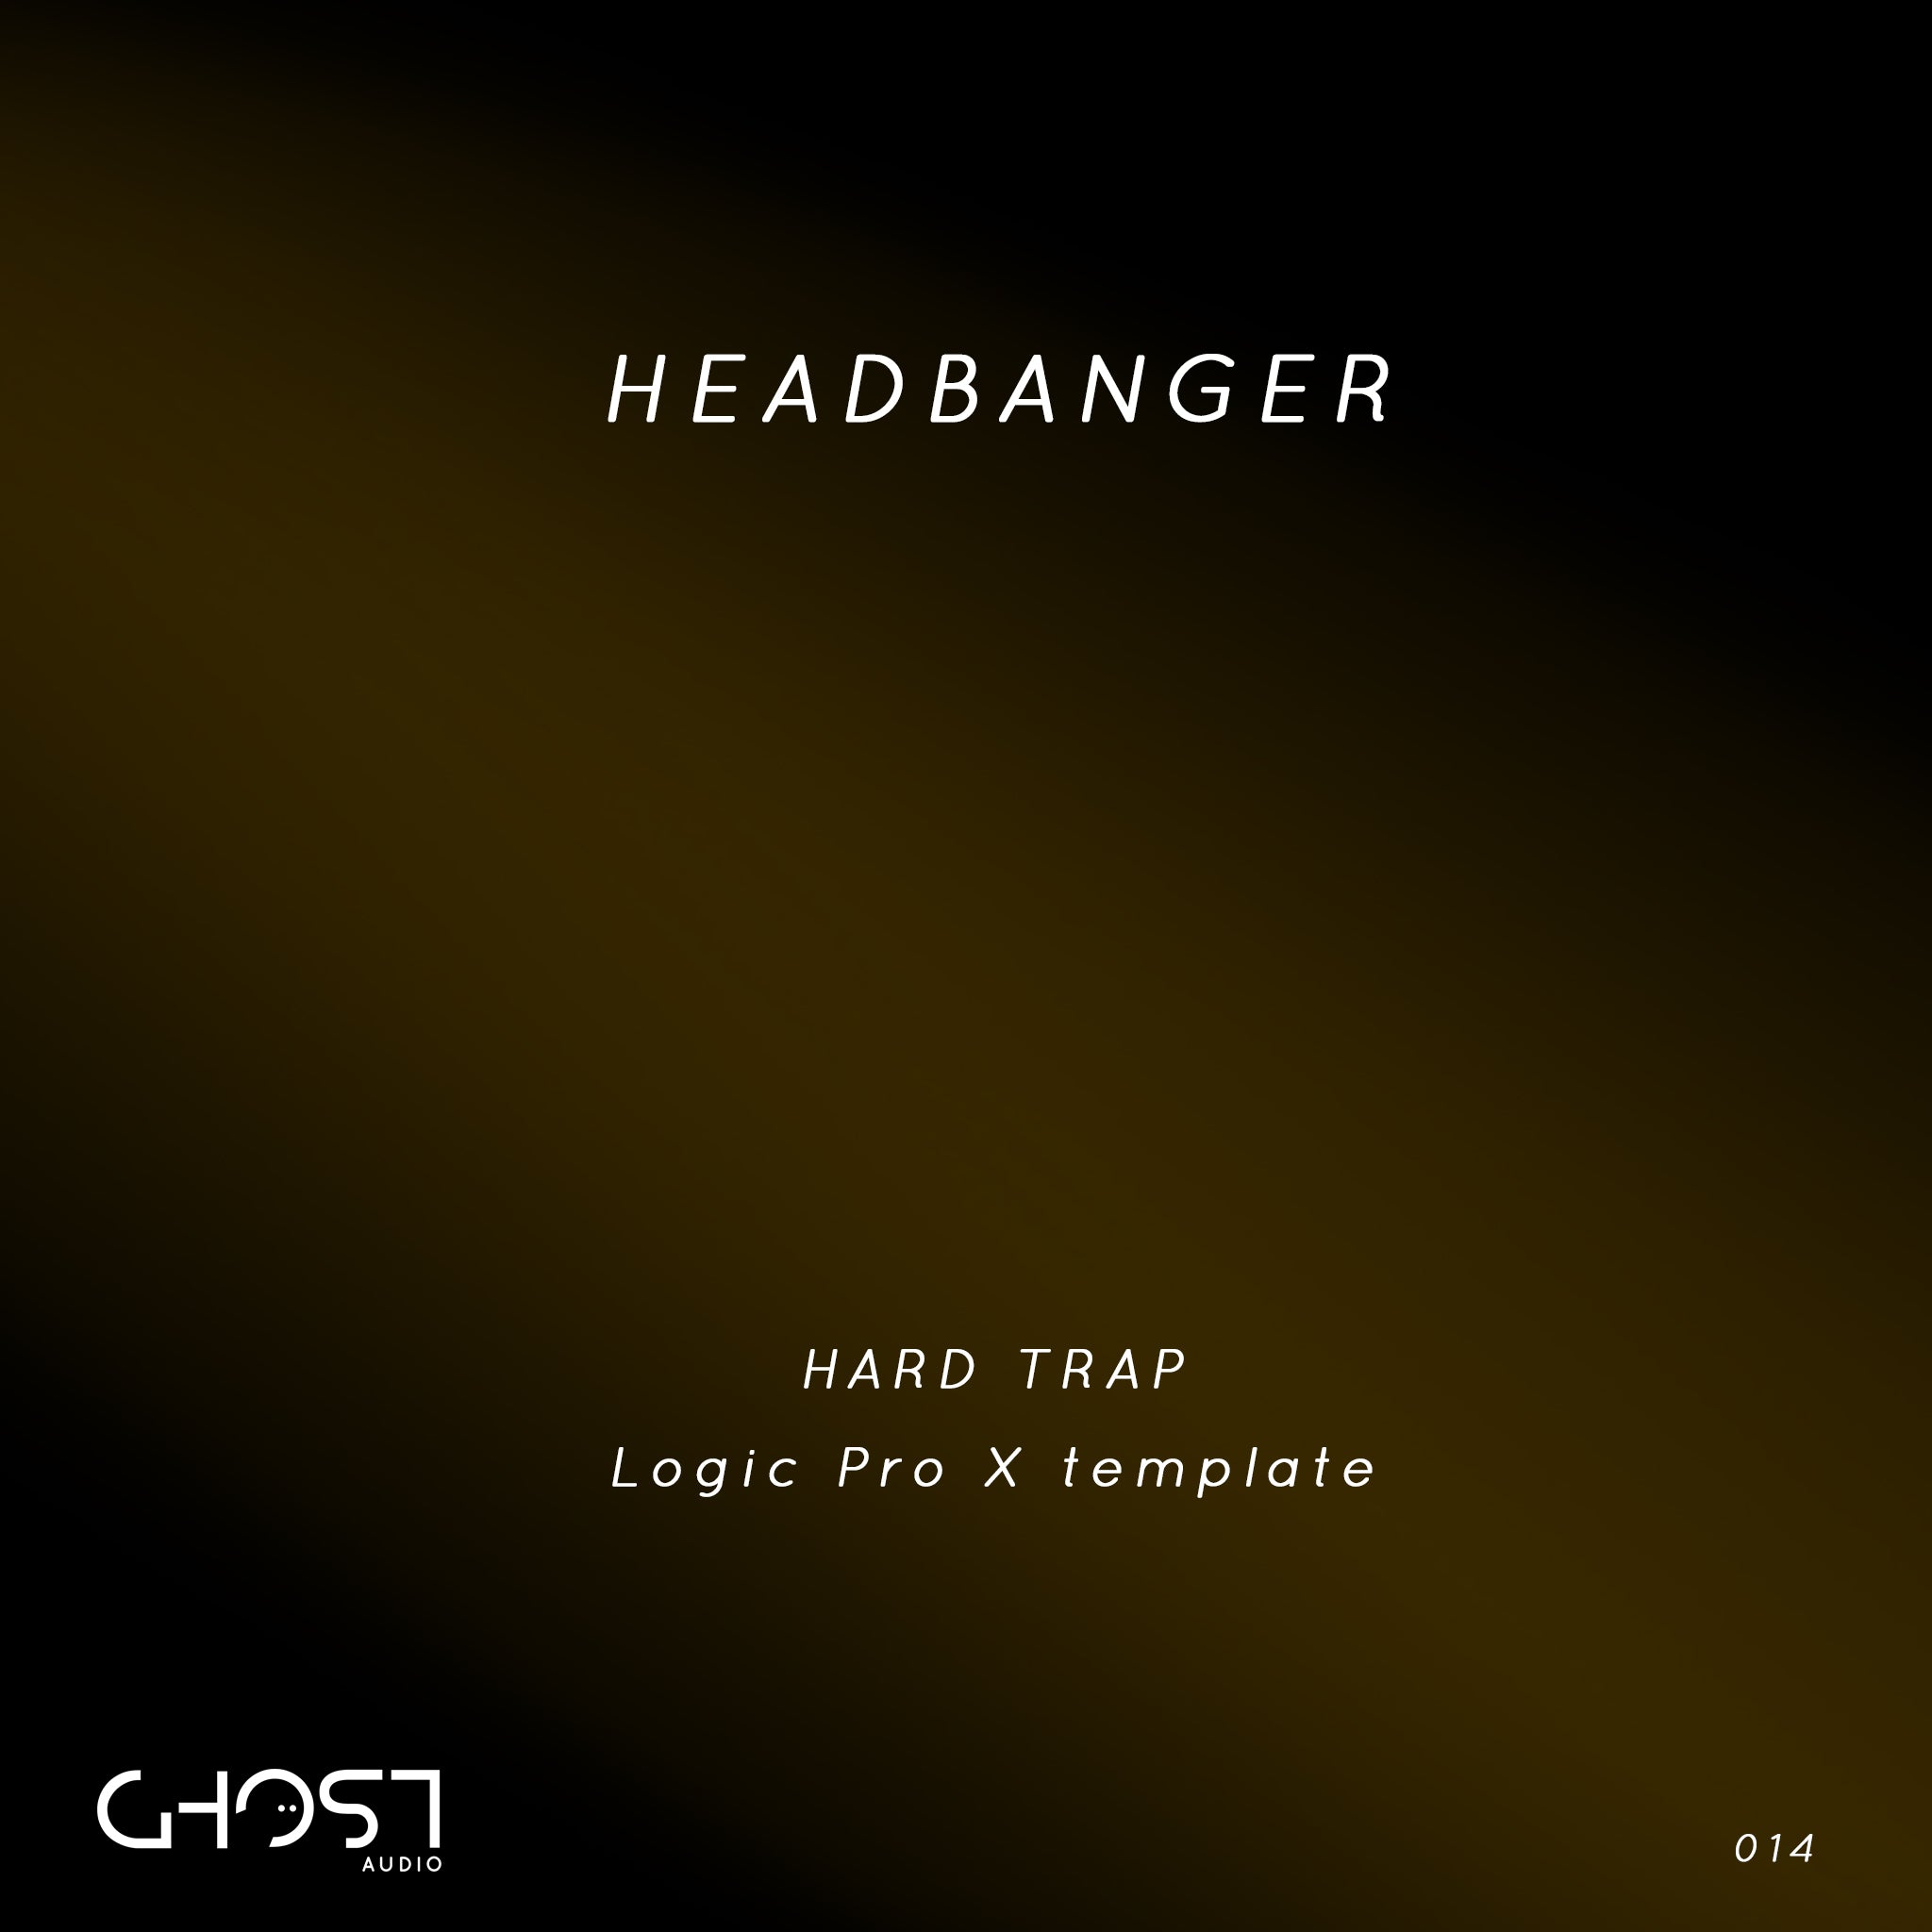 HEADBANGER - HARD TRAP ( LOGIC PRO X TEMPLATE )